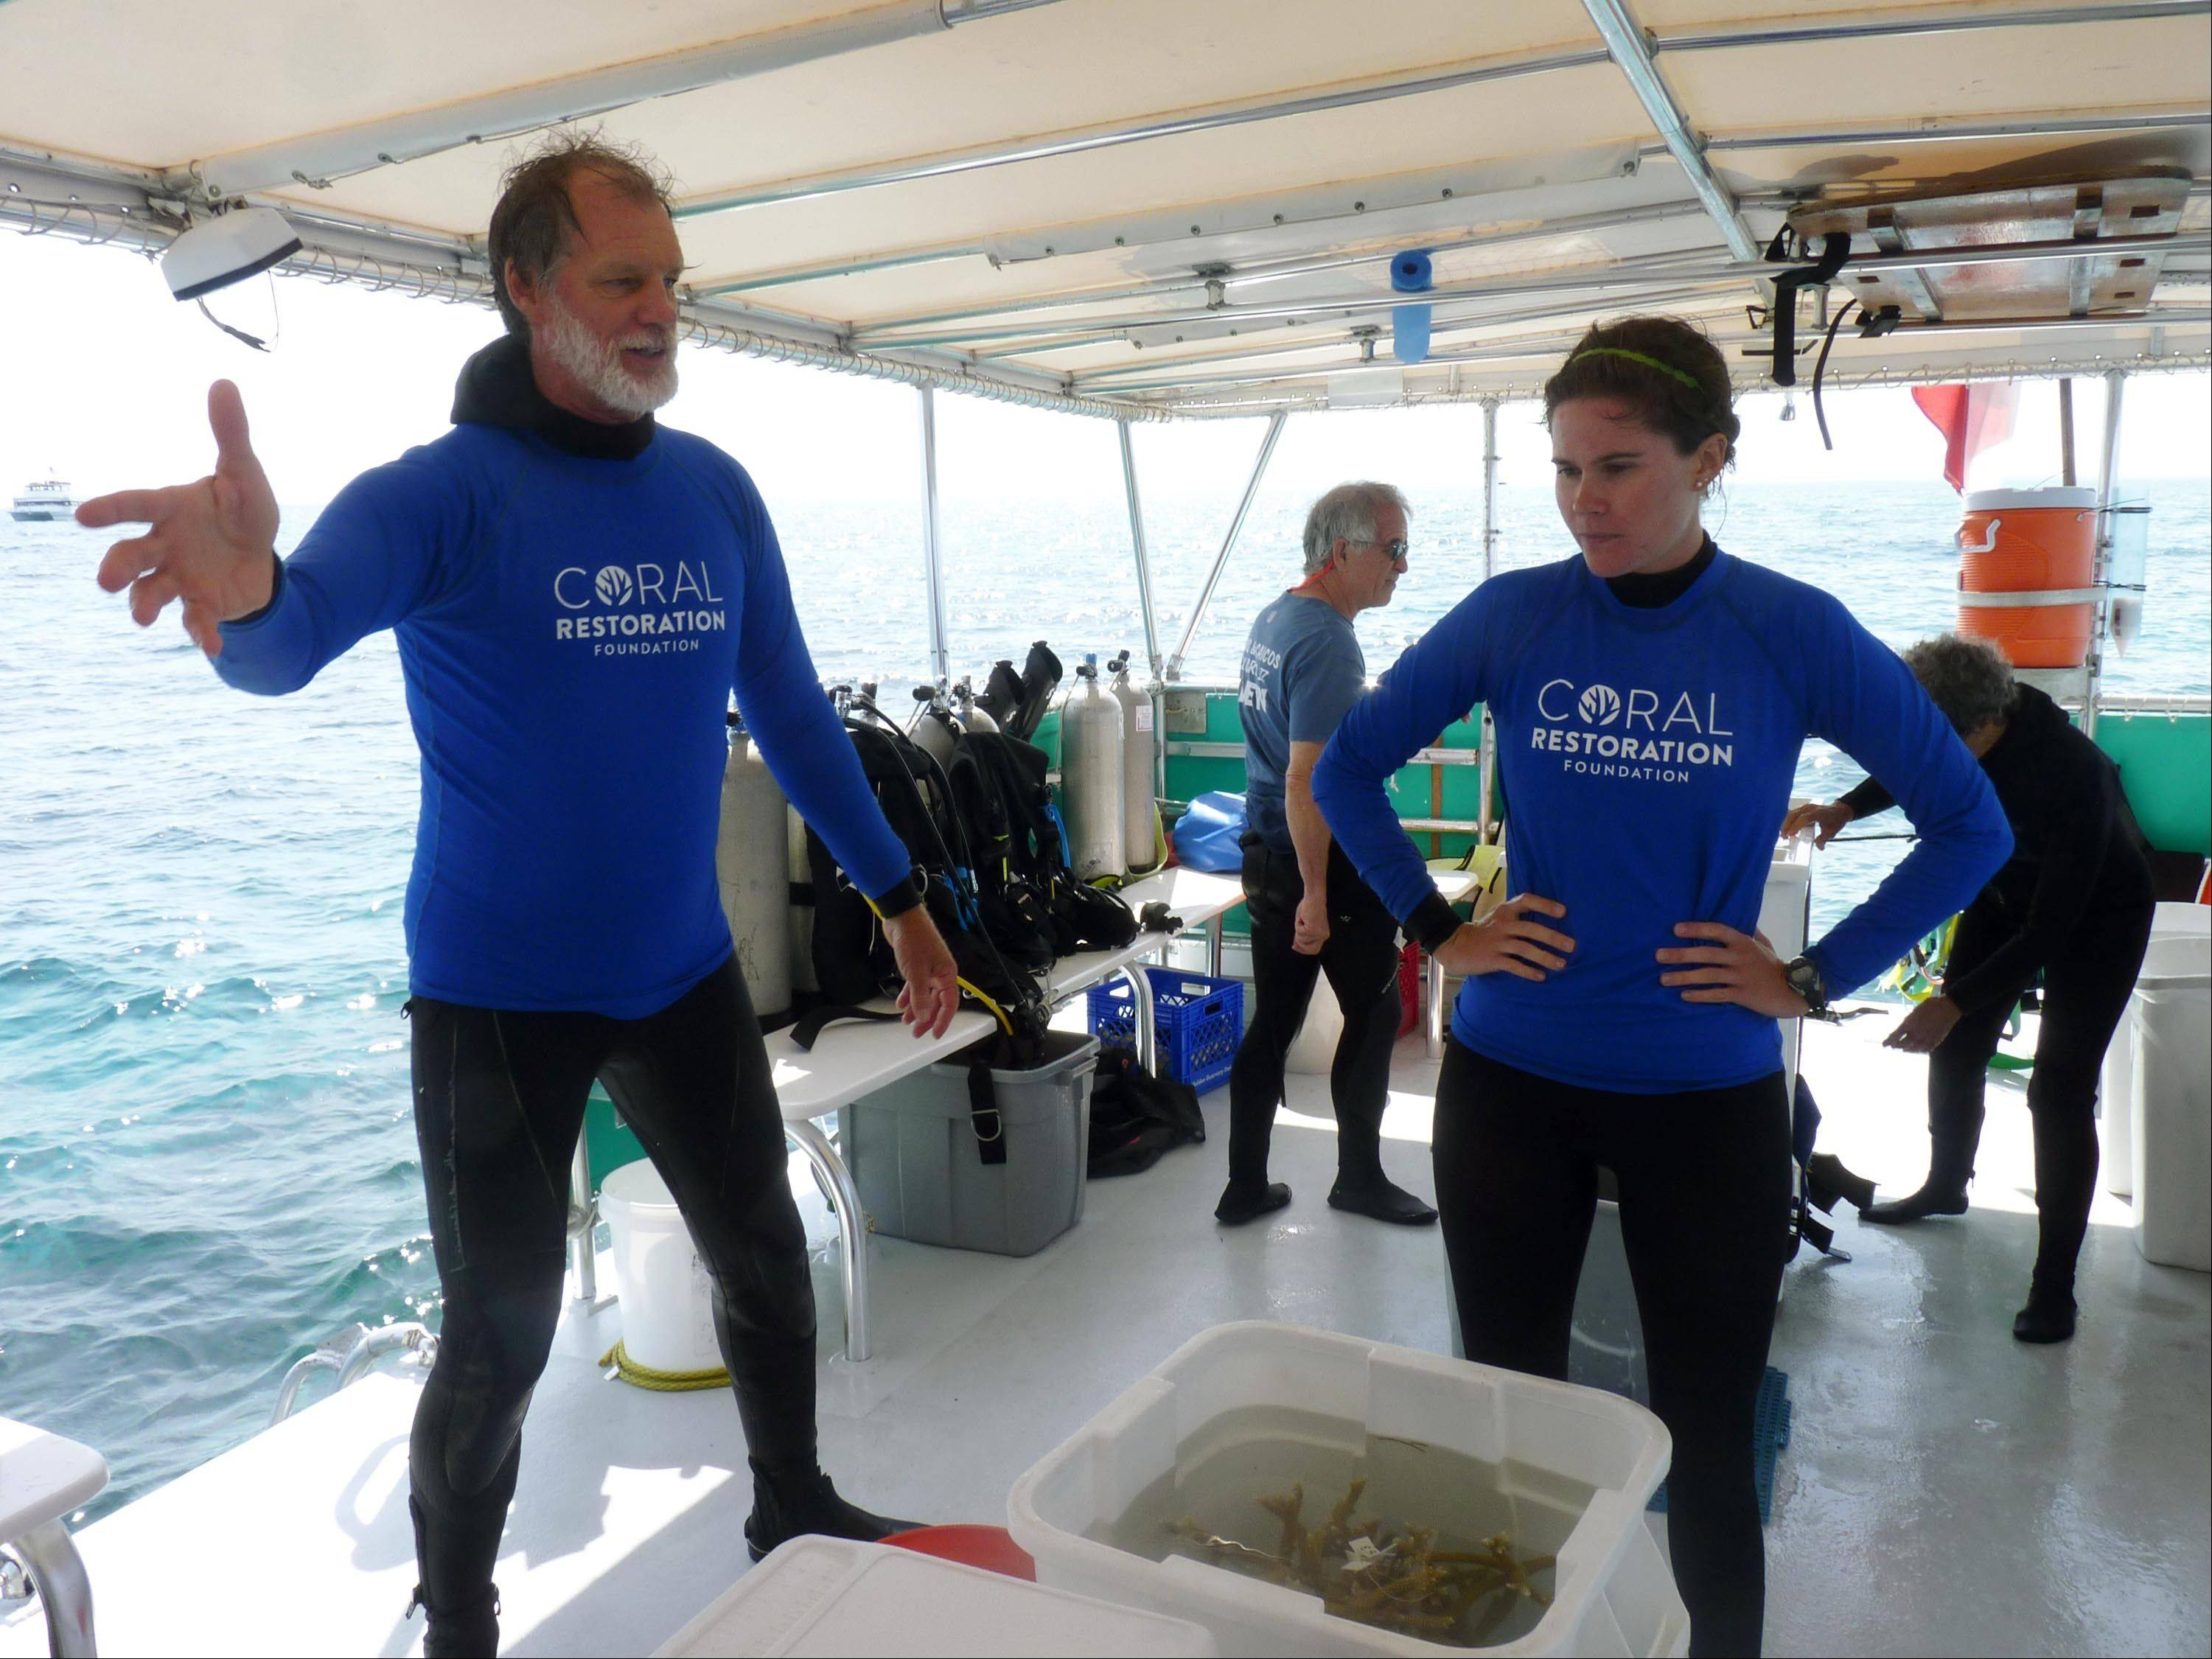 Ken Nedimyer, left, and Kayla Ripple during a workshop on restoring coral reefs in Key Largo, Fla. Nedimyer has been breathing new life into coral reefs for more than a decade with his Coral Restoration Foundation.